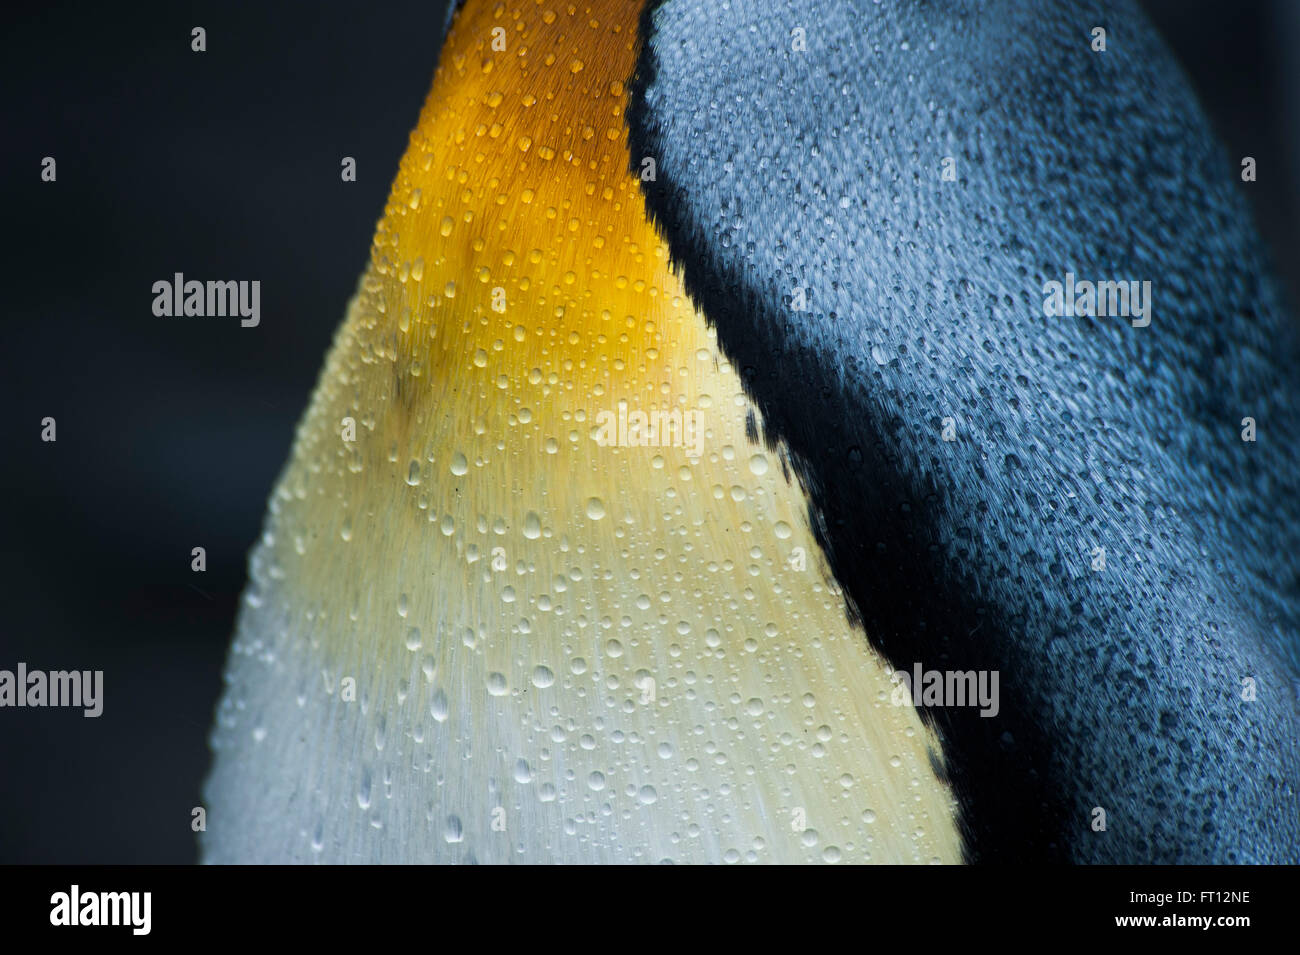 Detail of King Penguin Aptenodytes patagonicus fleece, Gold Harbour, South Georgia Island, Antarctica Stock Photo